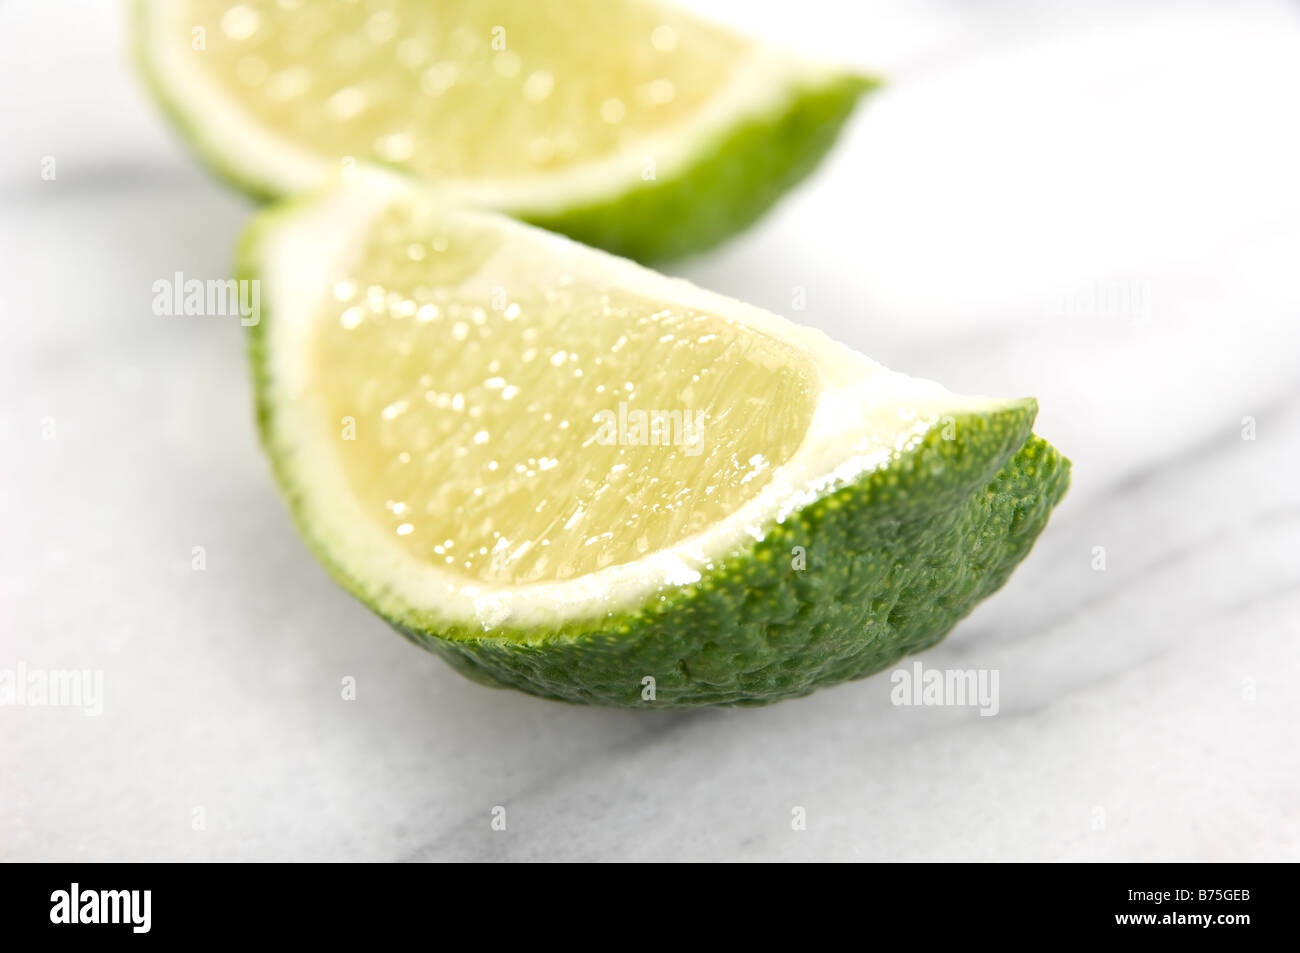 Close up of two slices of lime placed on a marble background. The front slice is drippingly juicy and pin sharp. - Stock Image